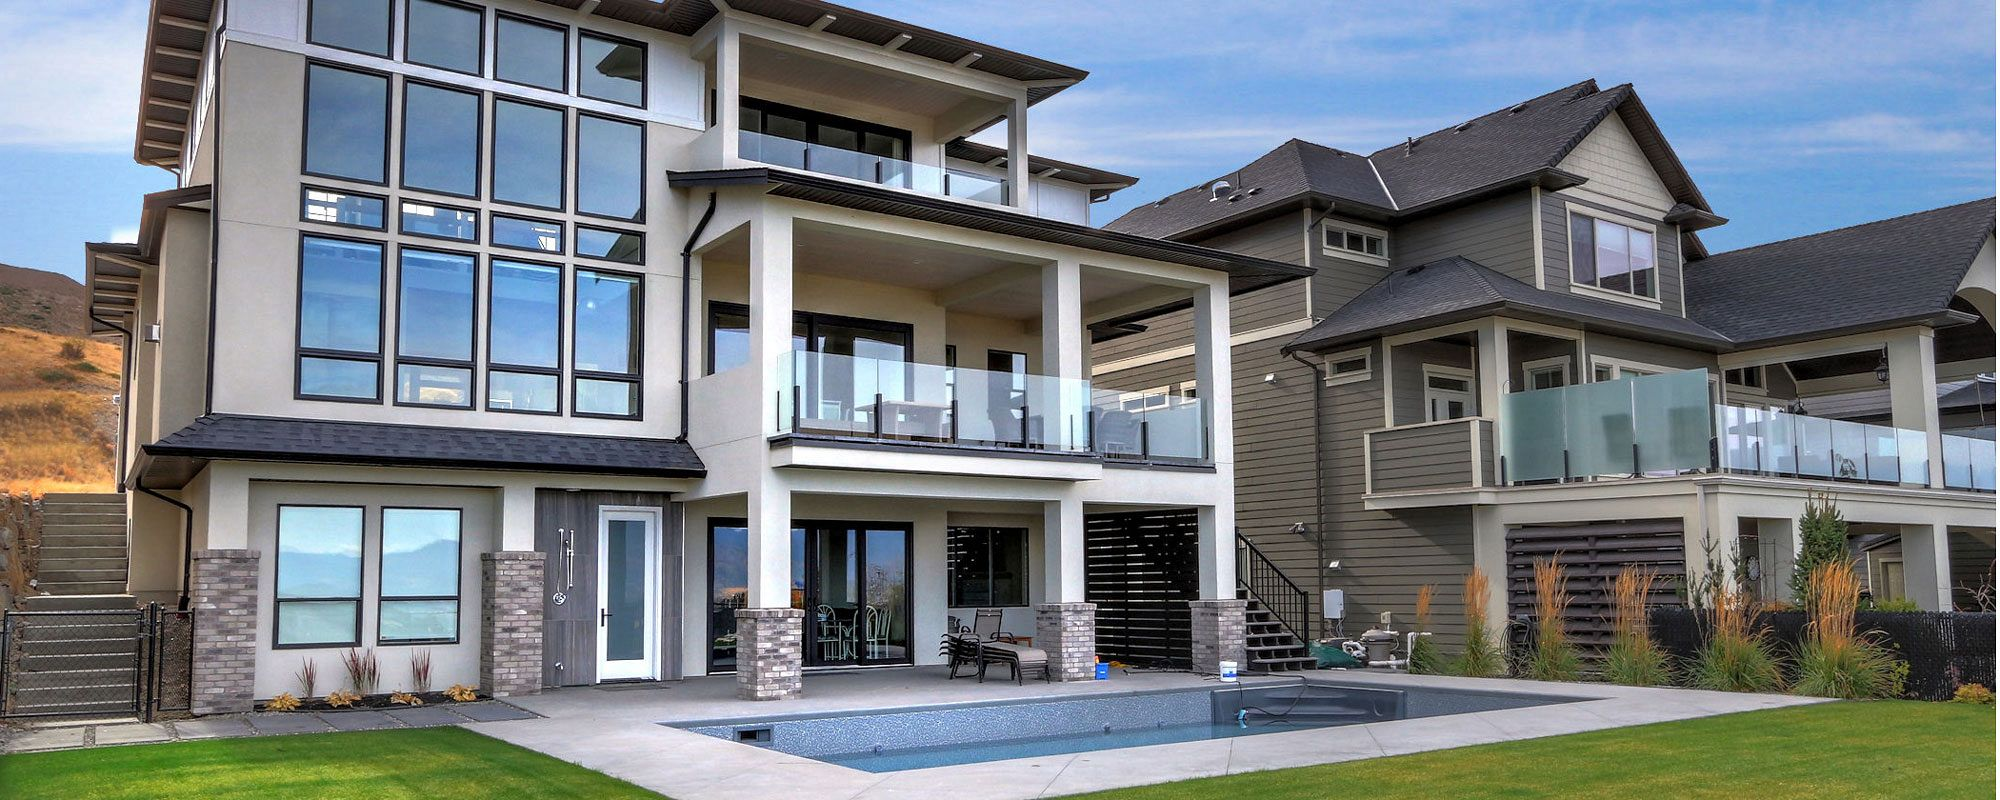 Back exterior of 470 Rockview Lane, with three floors, two decks and a patio with a large in-ground pool custom built by Stark Homes